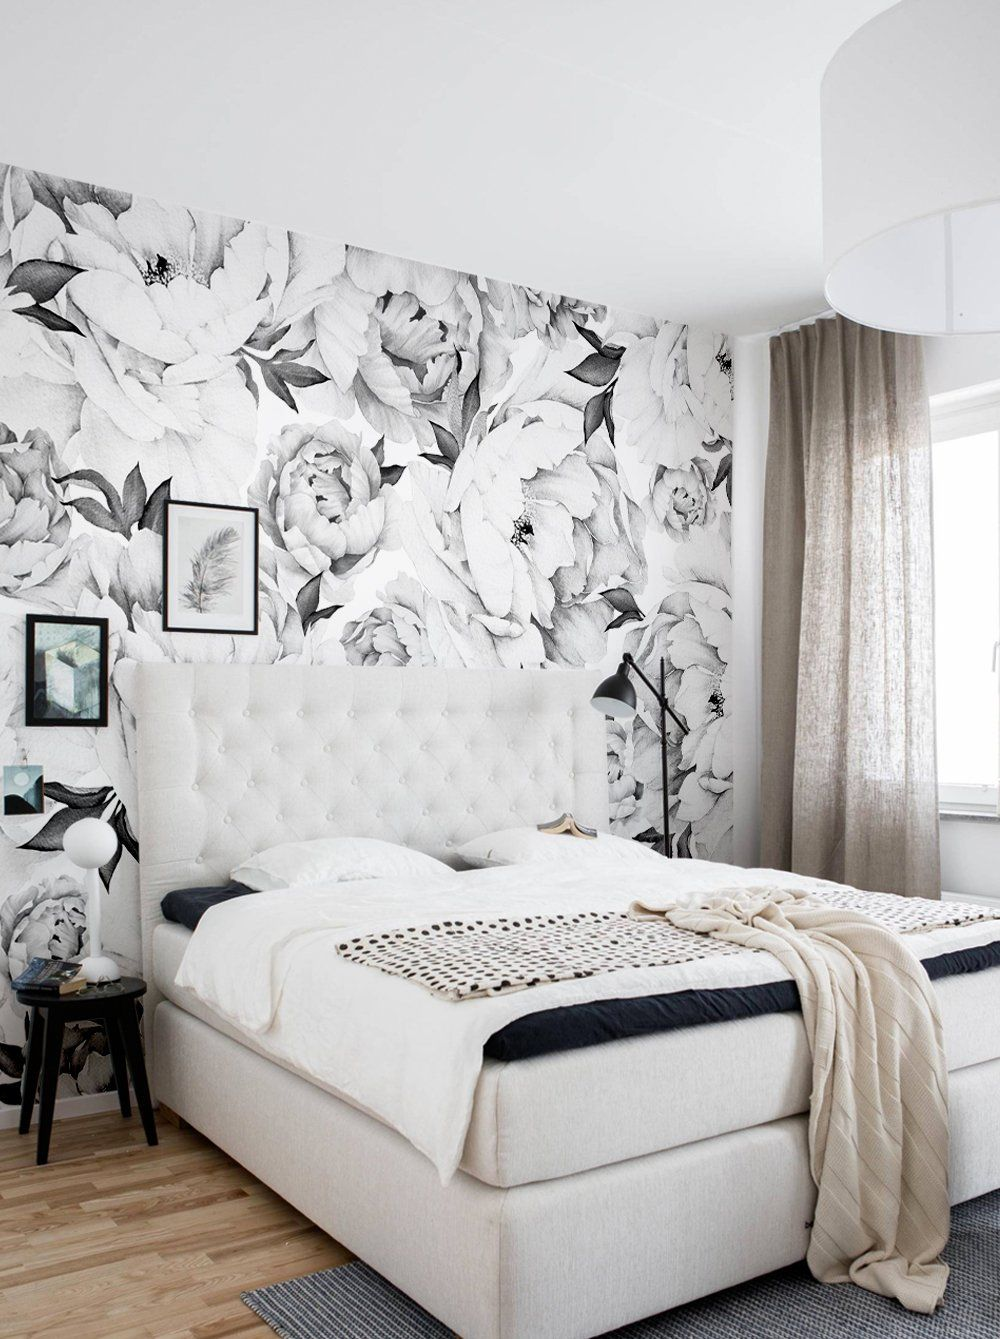 peony flower mural wall art wallpaper peel and stick floorspeony flower mural wall art wallpaper peel and stick